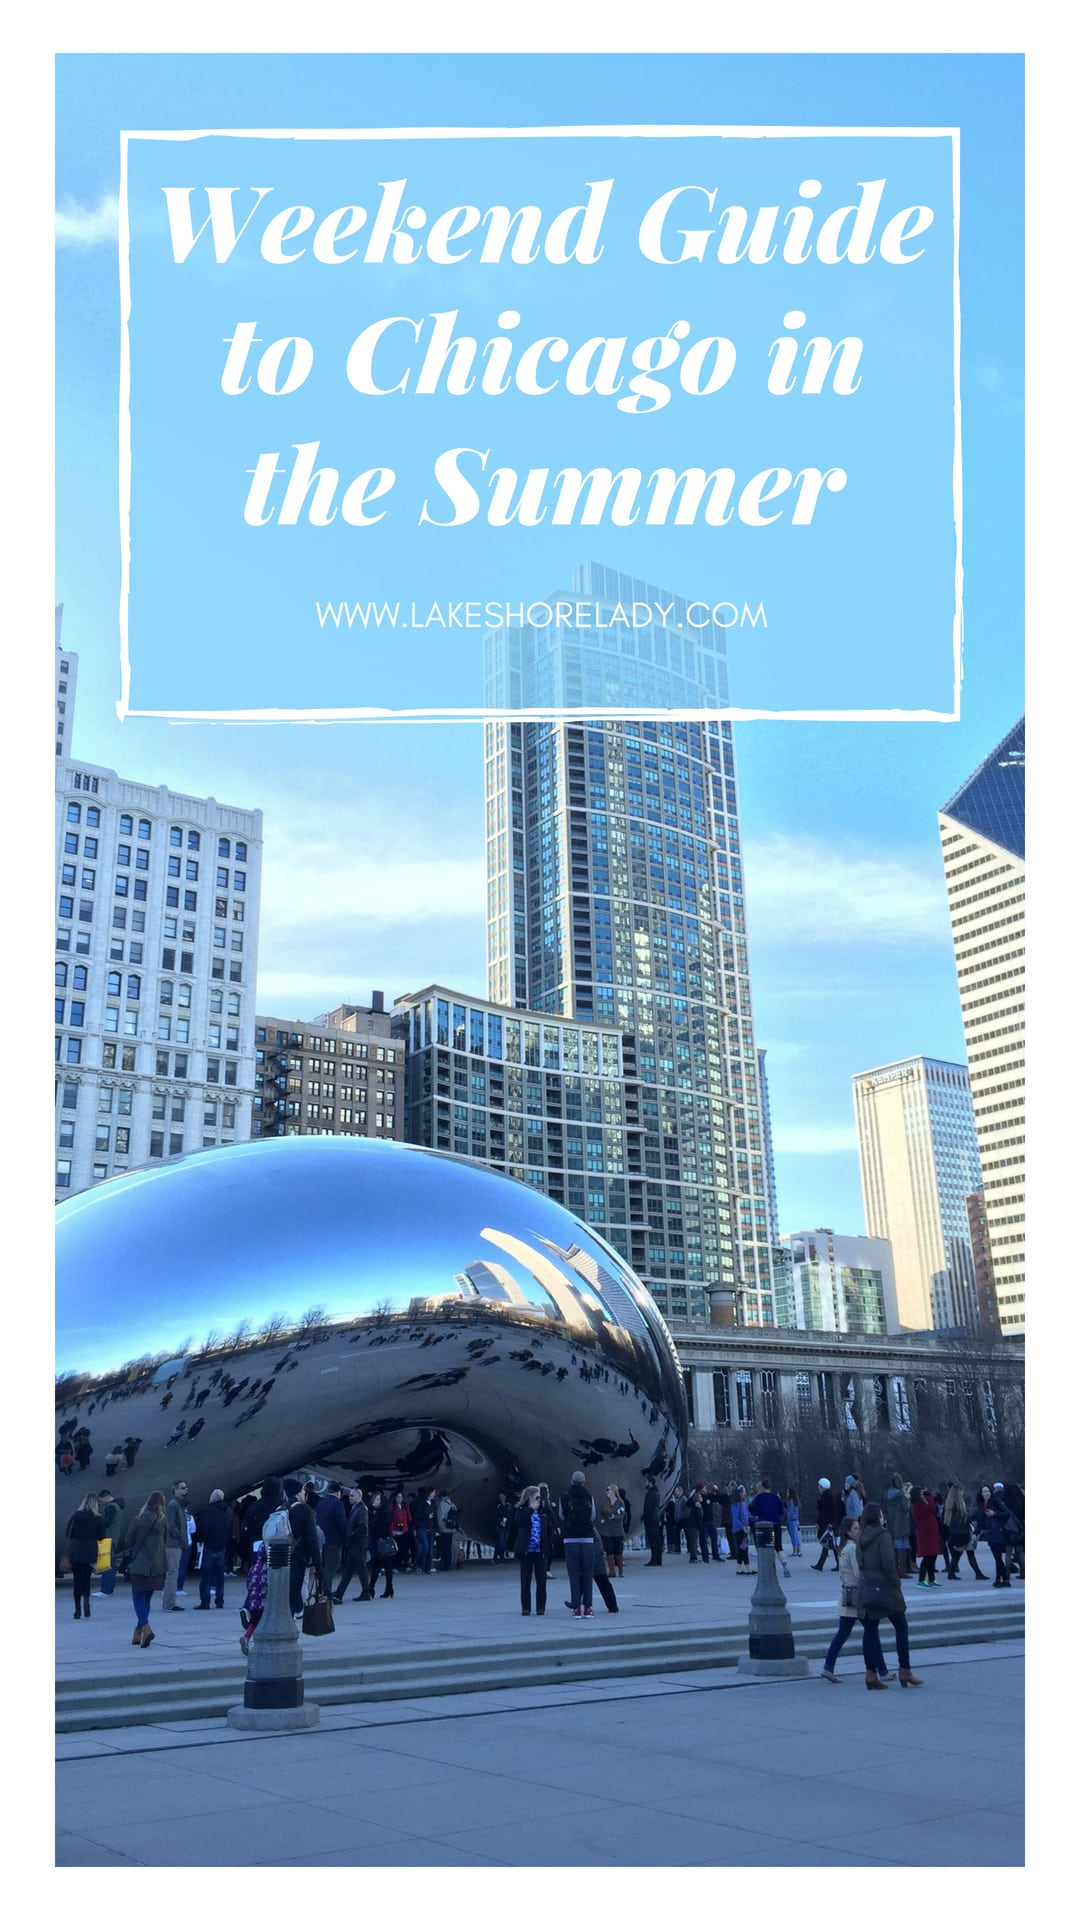 Weekend Guide to Chicago in the Summer